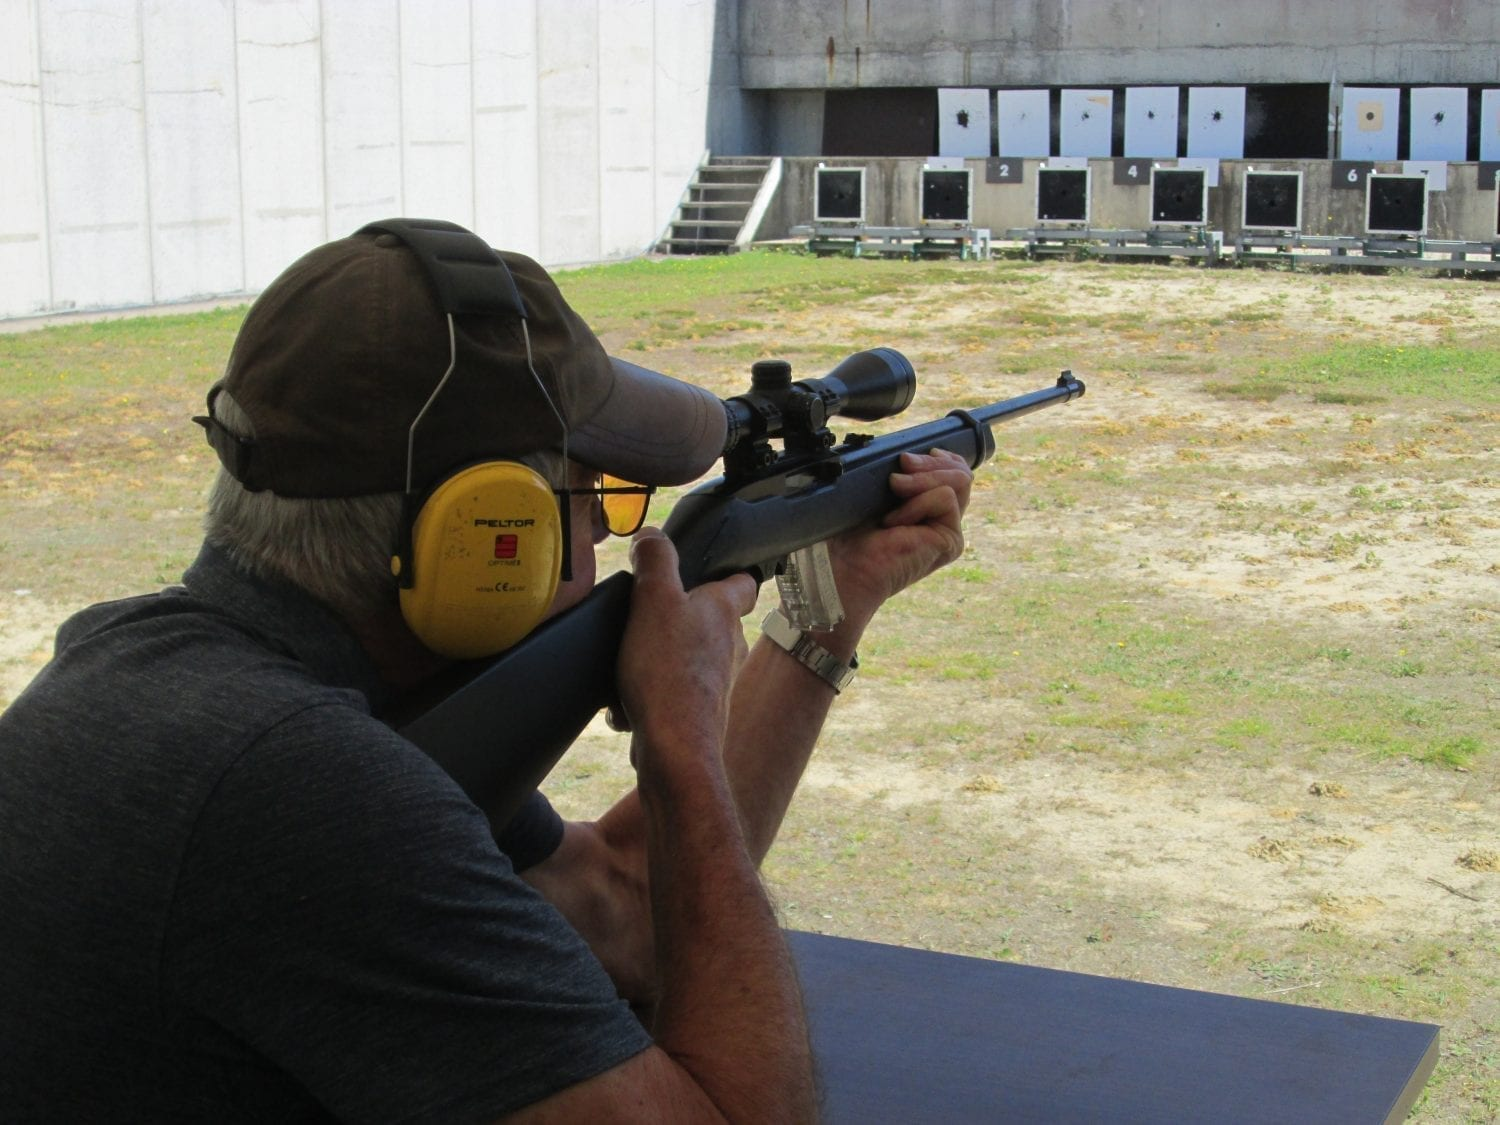 Shooting at the range with a rifle